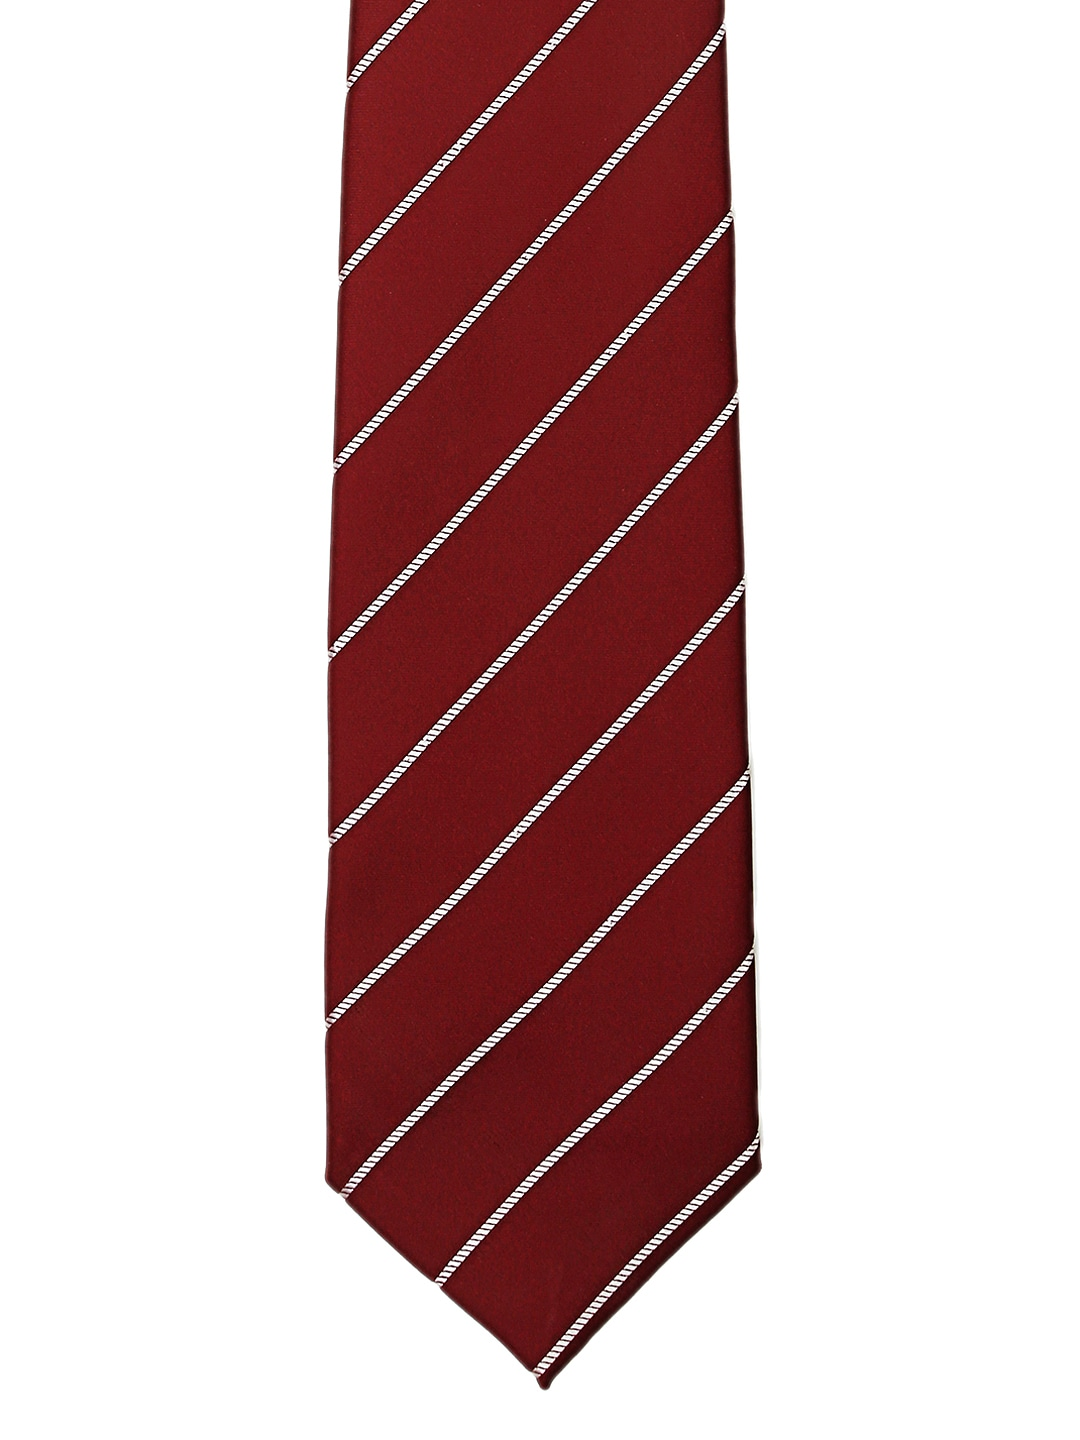 Tossido Maroon Striped Tie